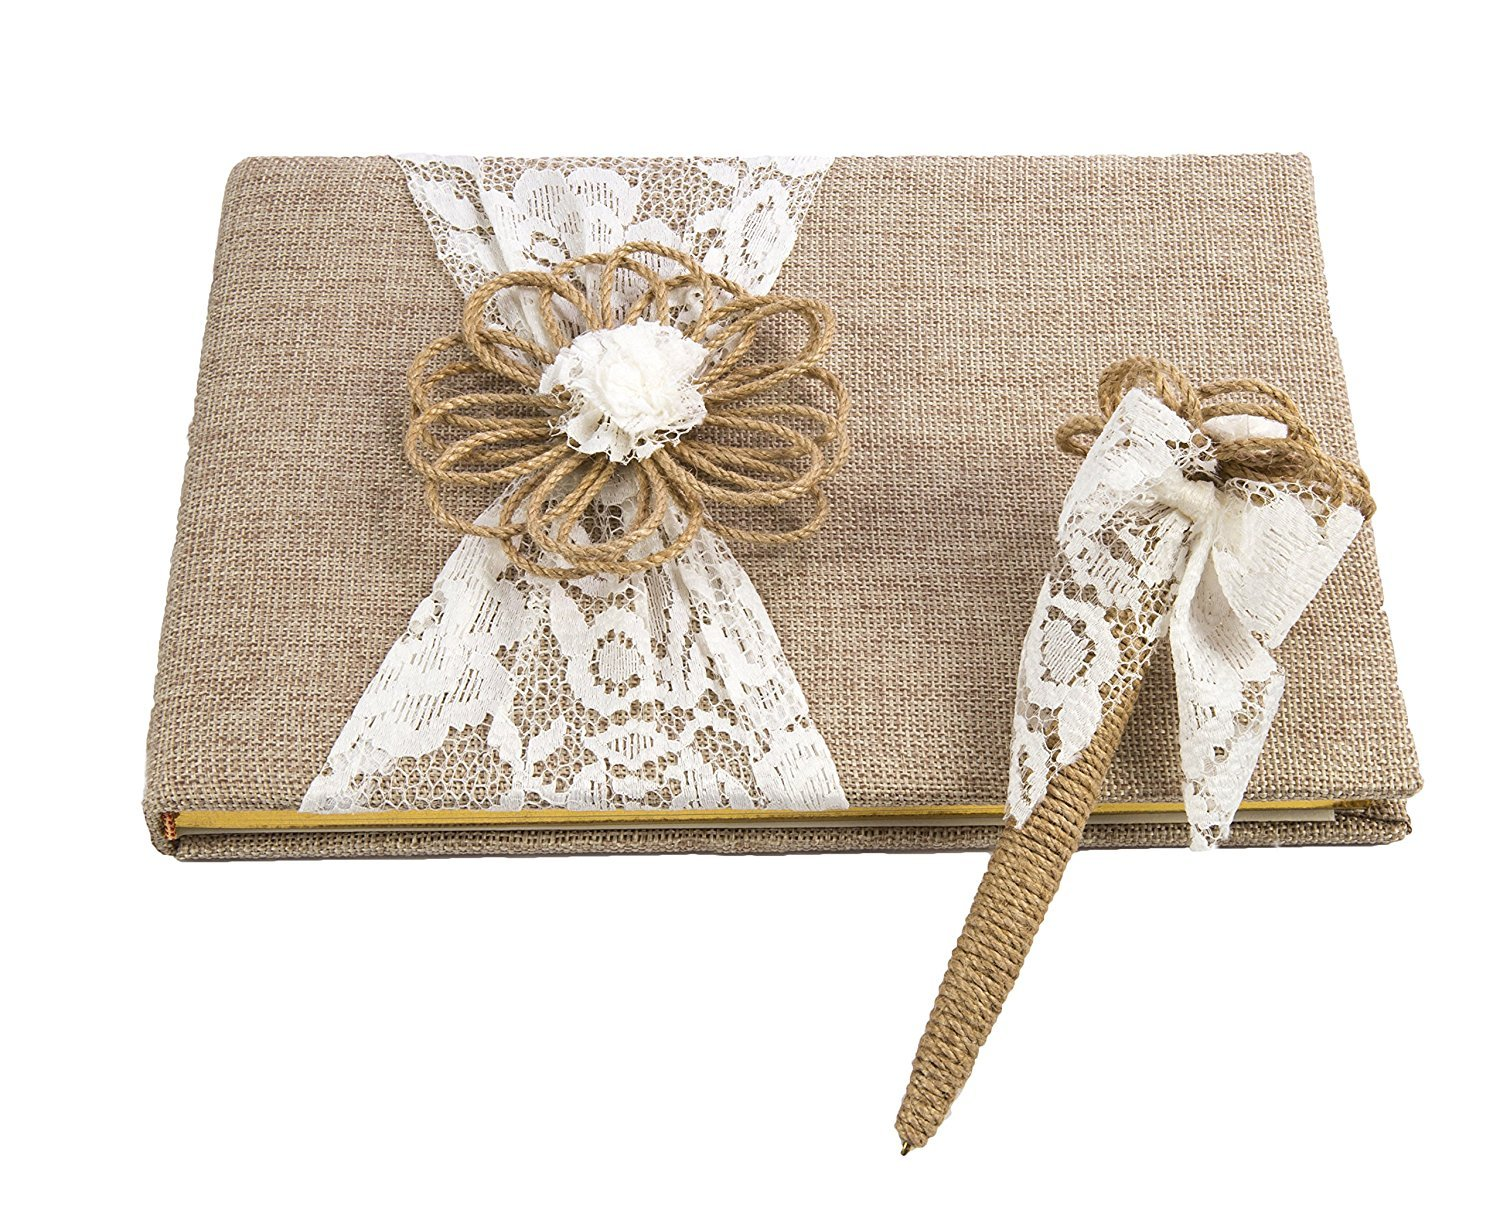 Maven Gifts: Darice David Tutera Burlap and Lace Guest Book and Pen Set